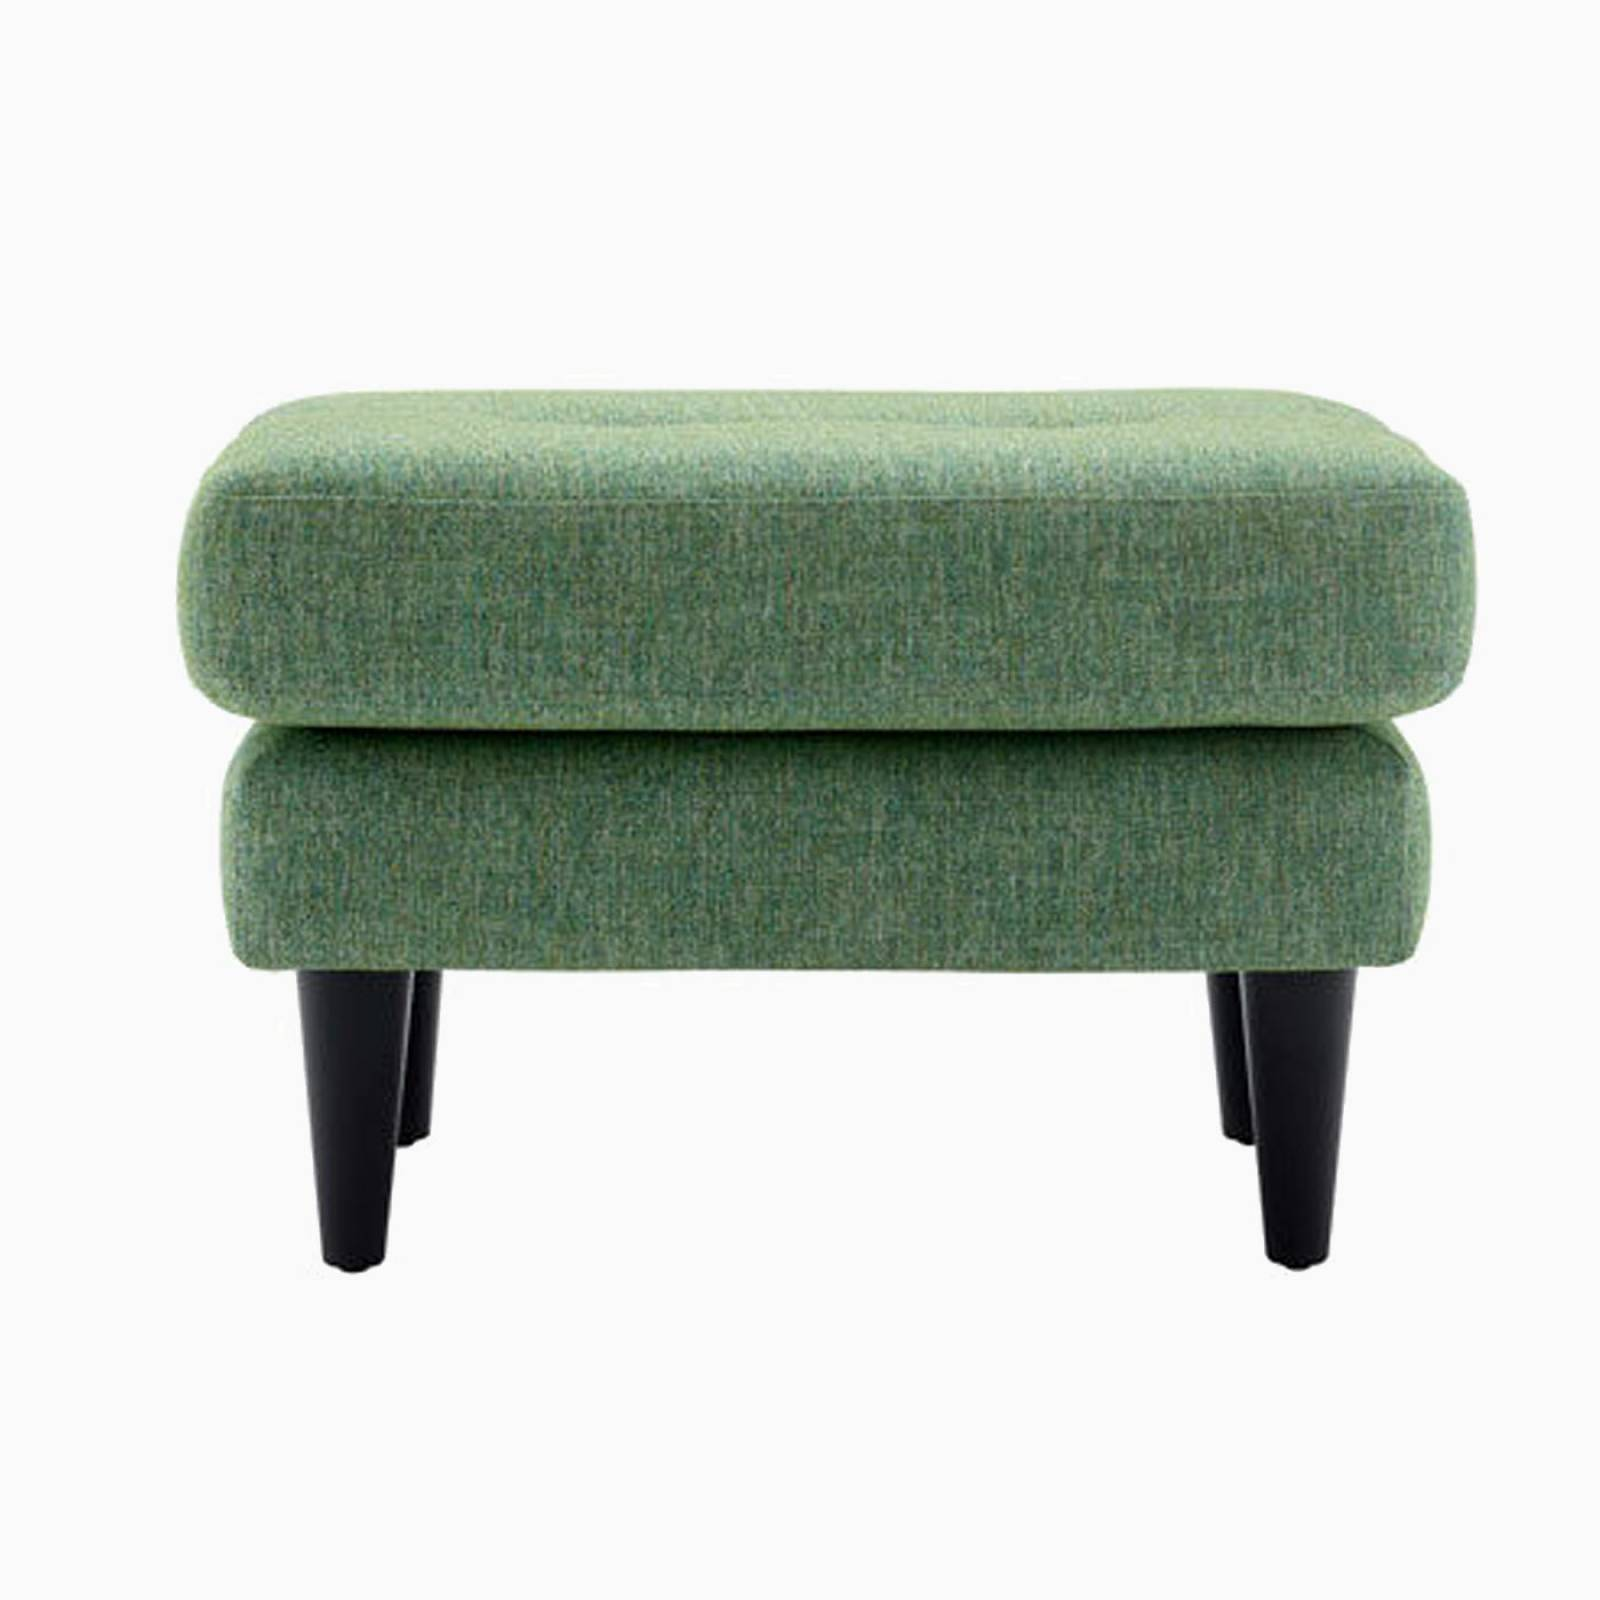 G Plan Vintage The Fifty Four Footstool thumbnails